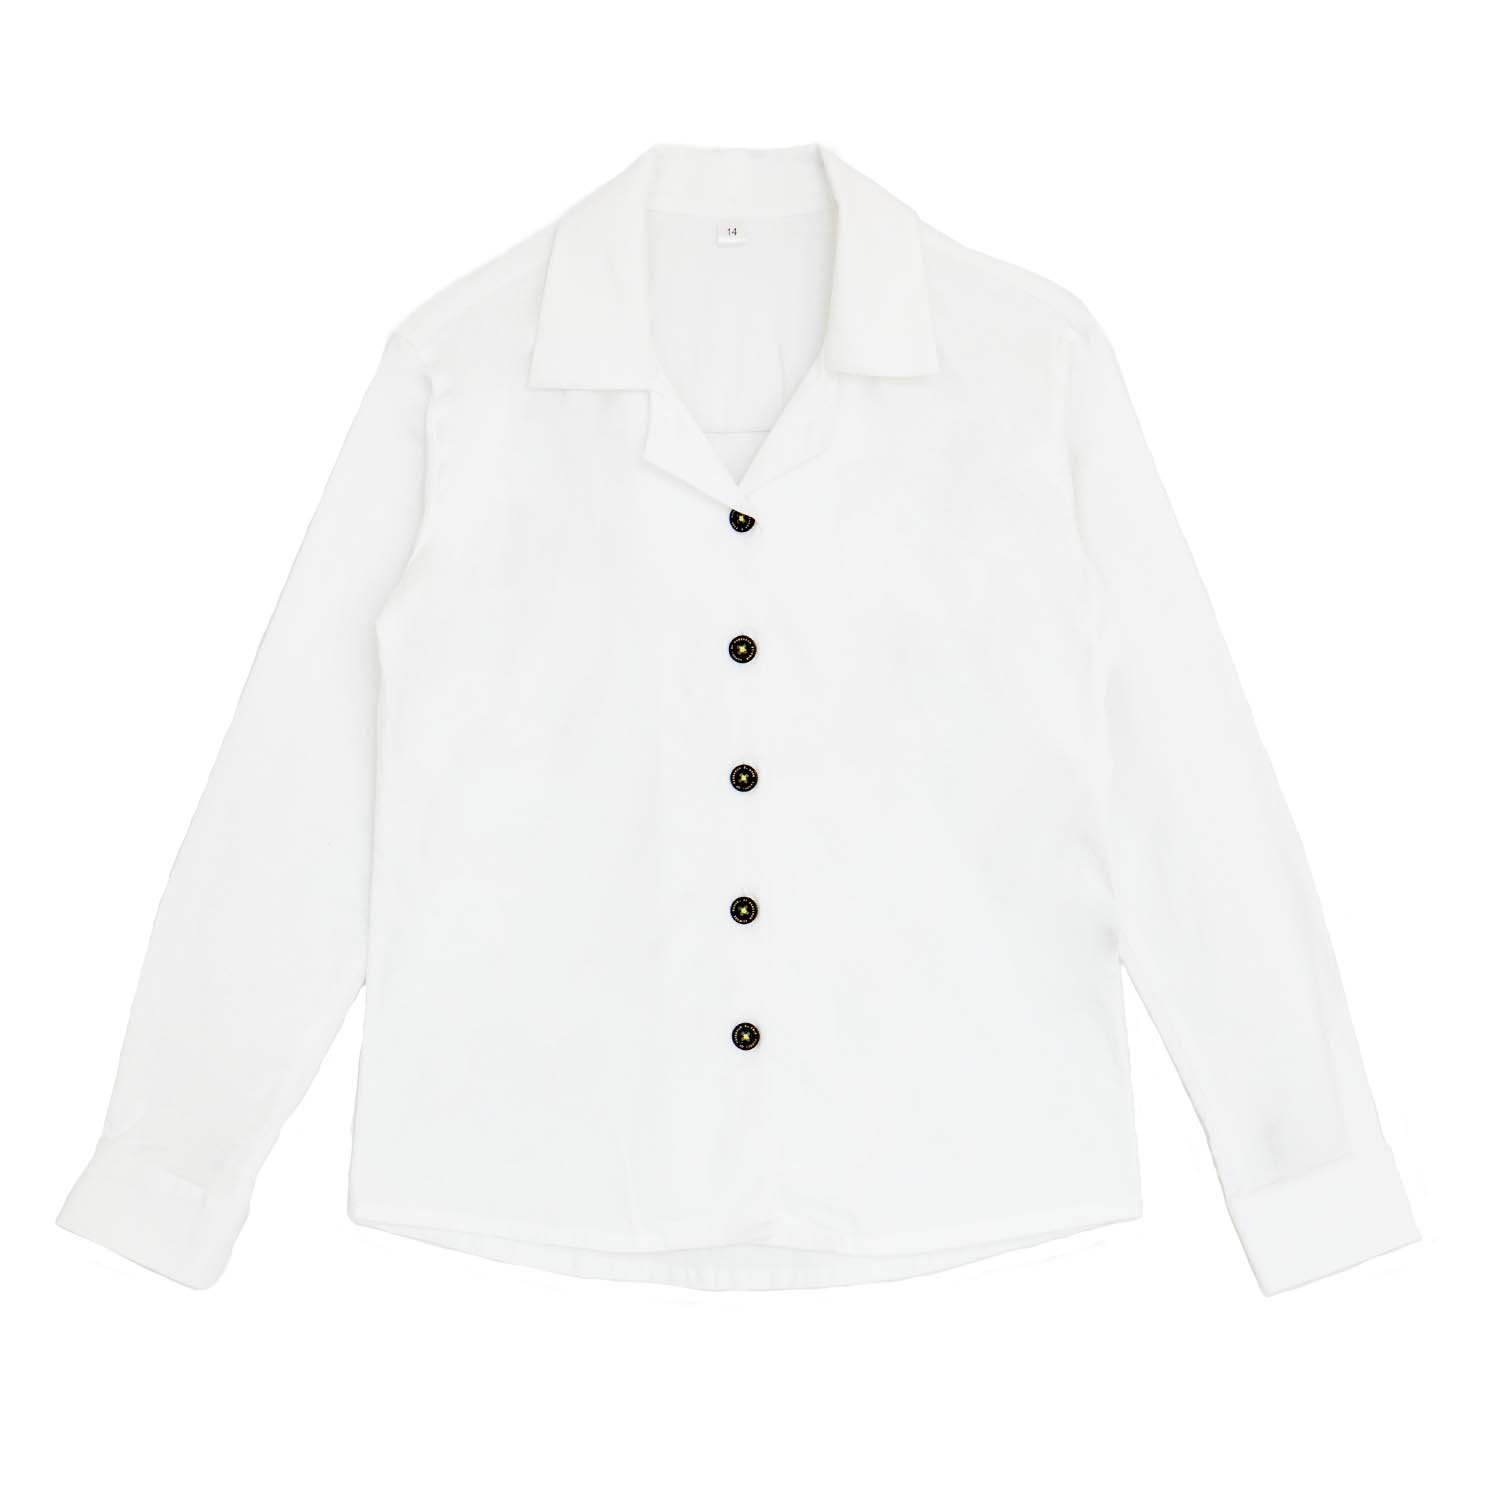 Girls White Blouse Long Sleeve